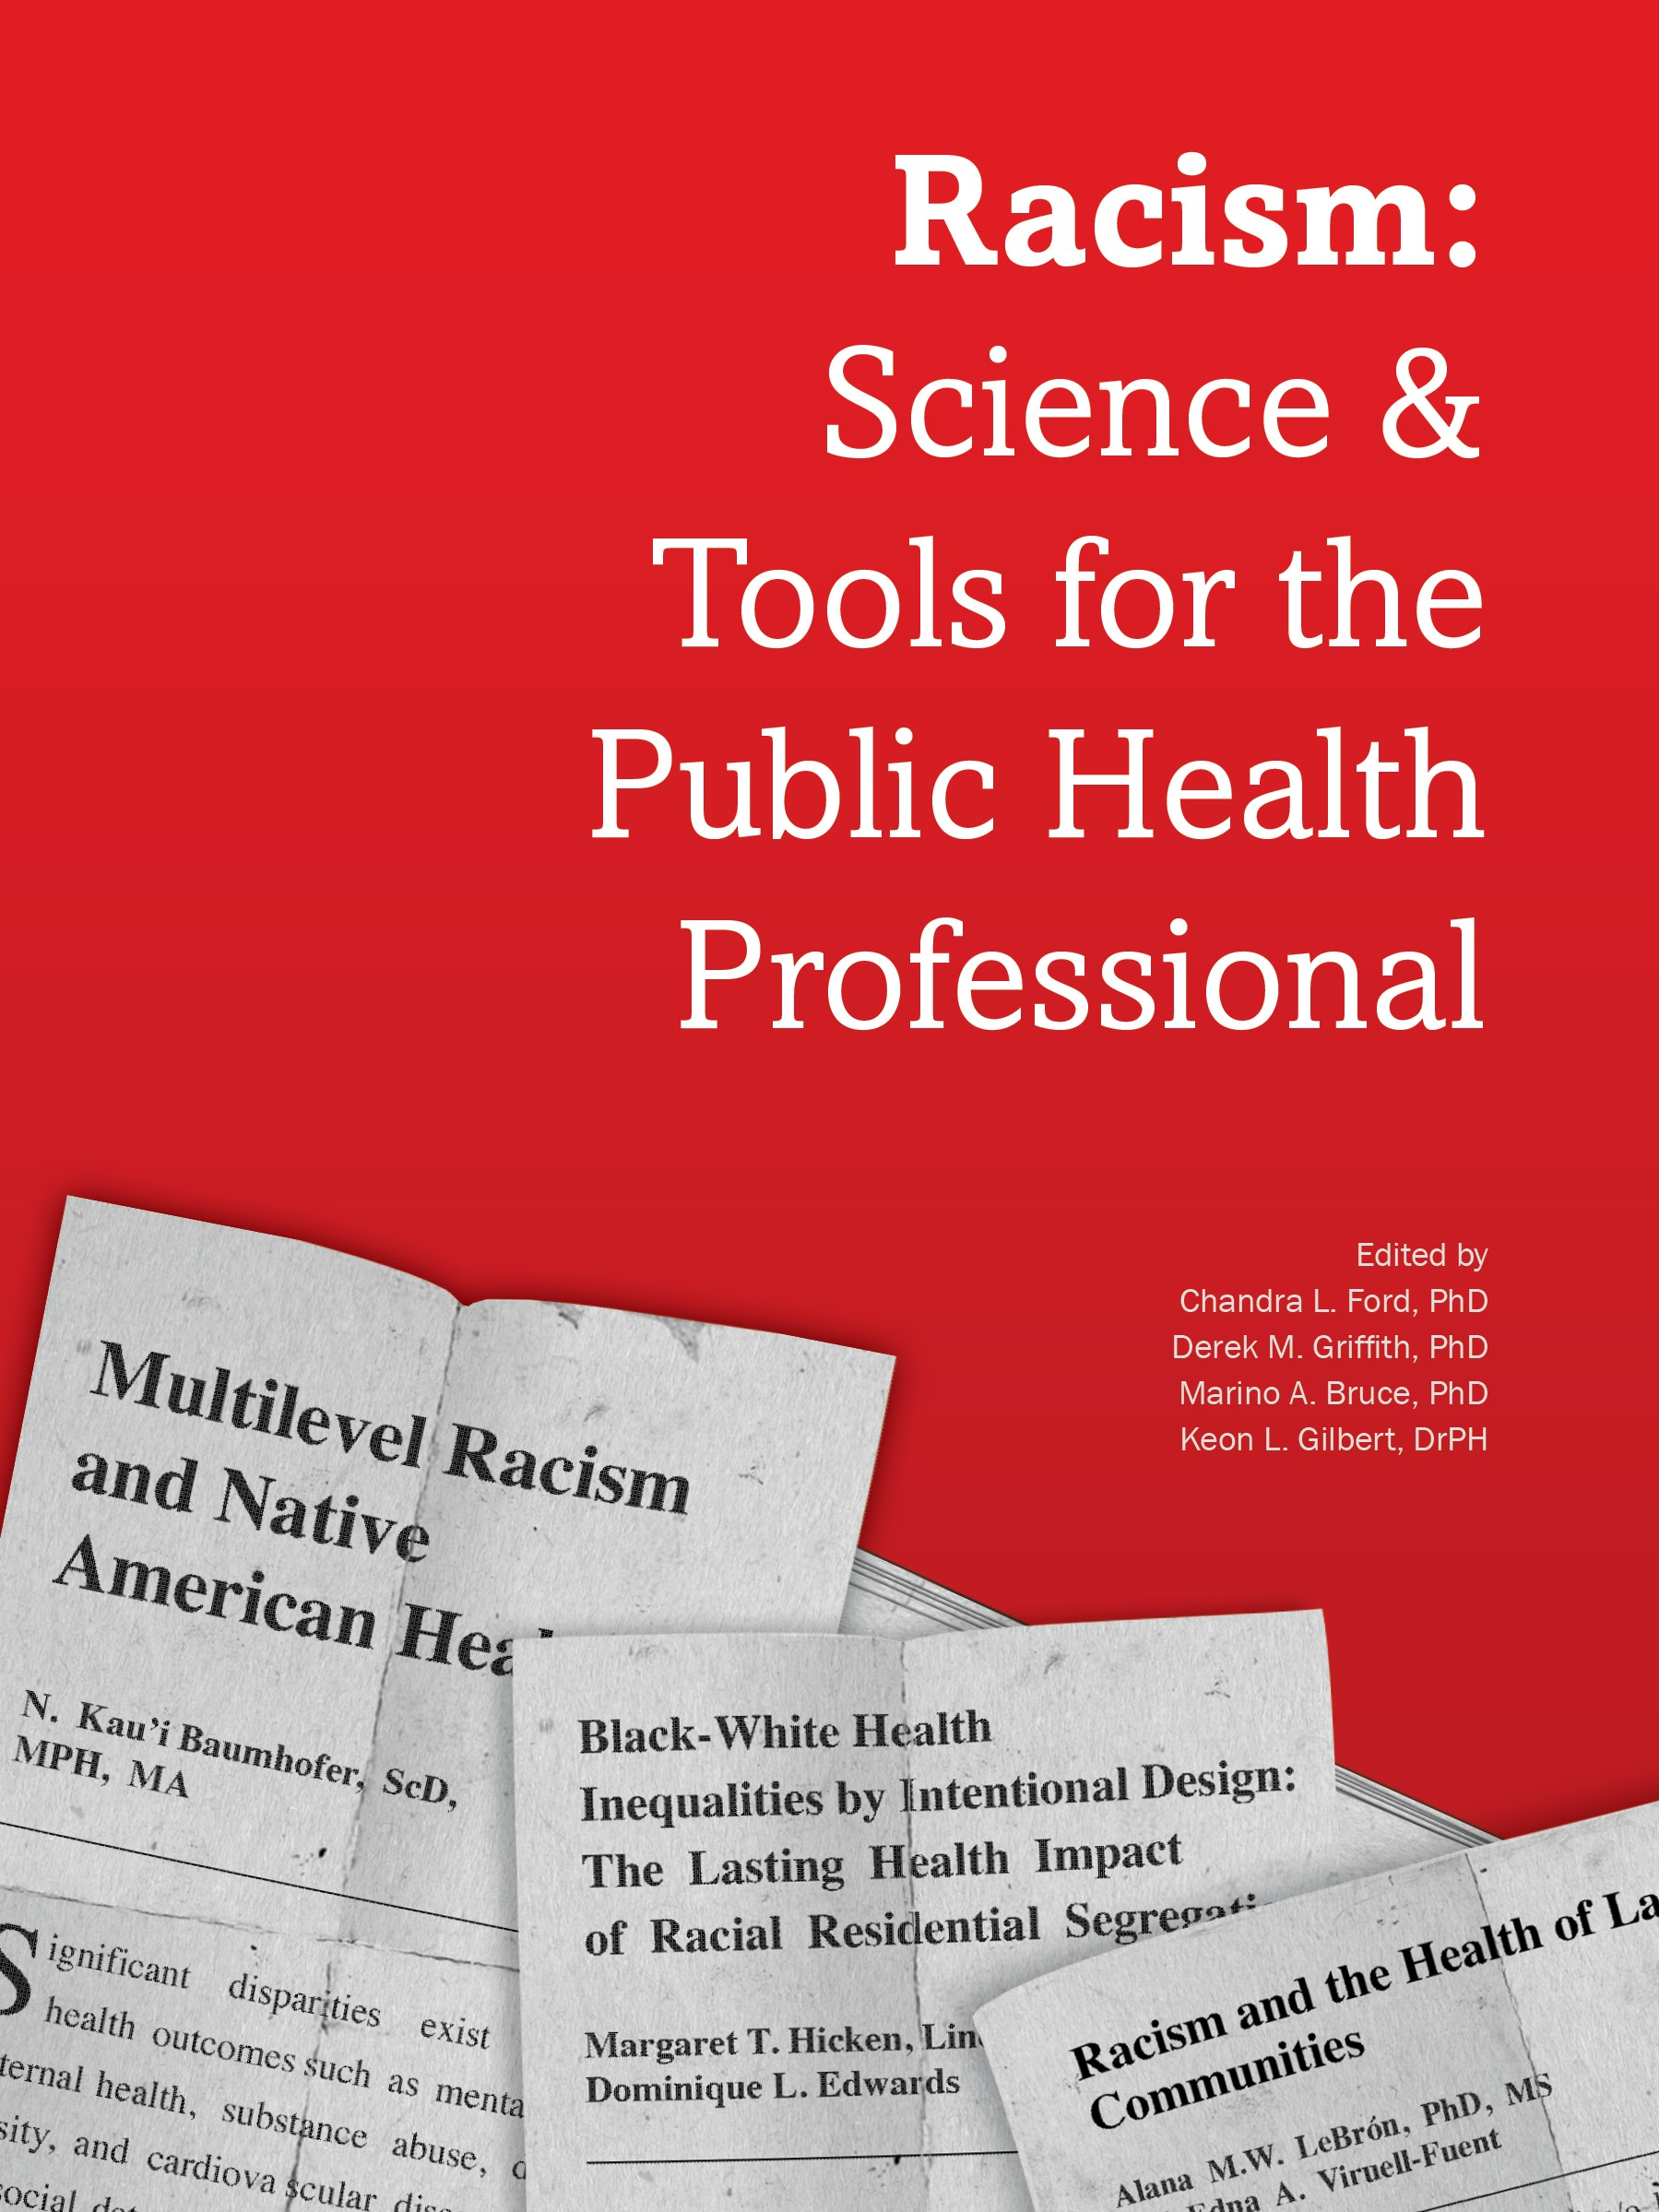 Racism:Science & Tools for the Public Health Professional